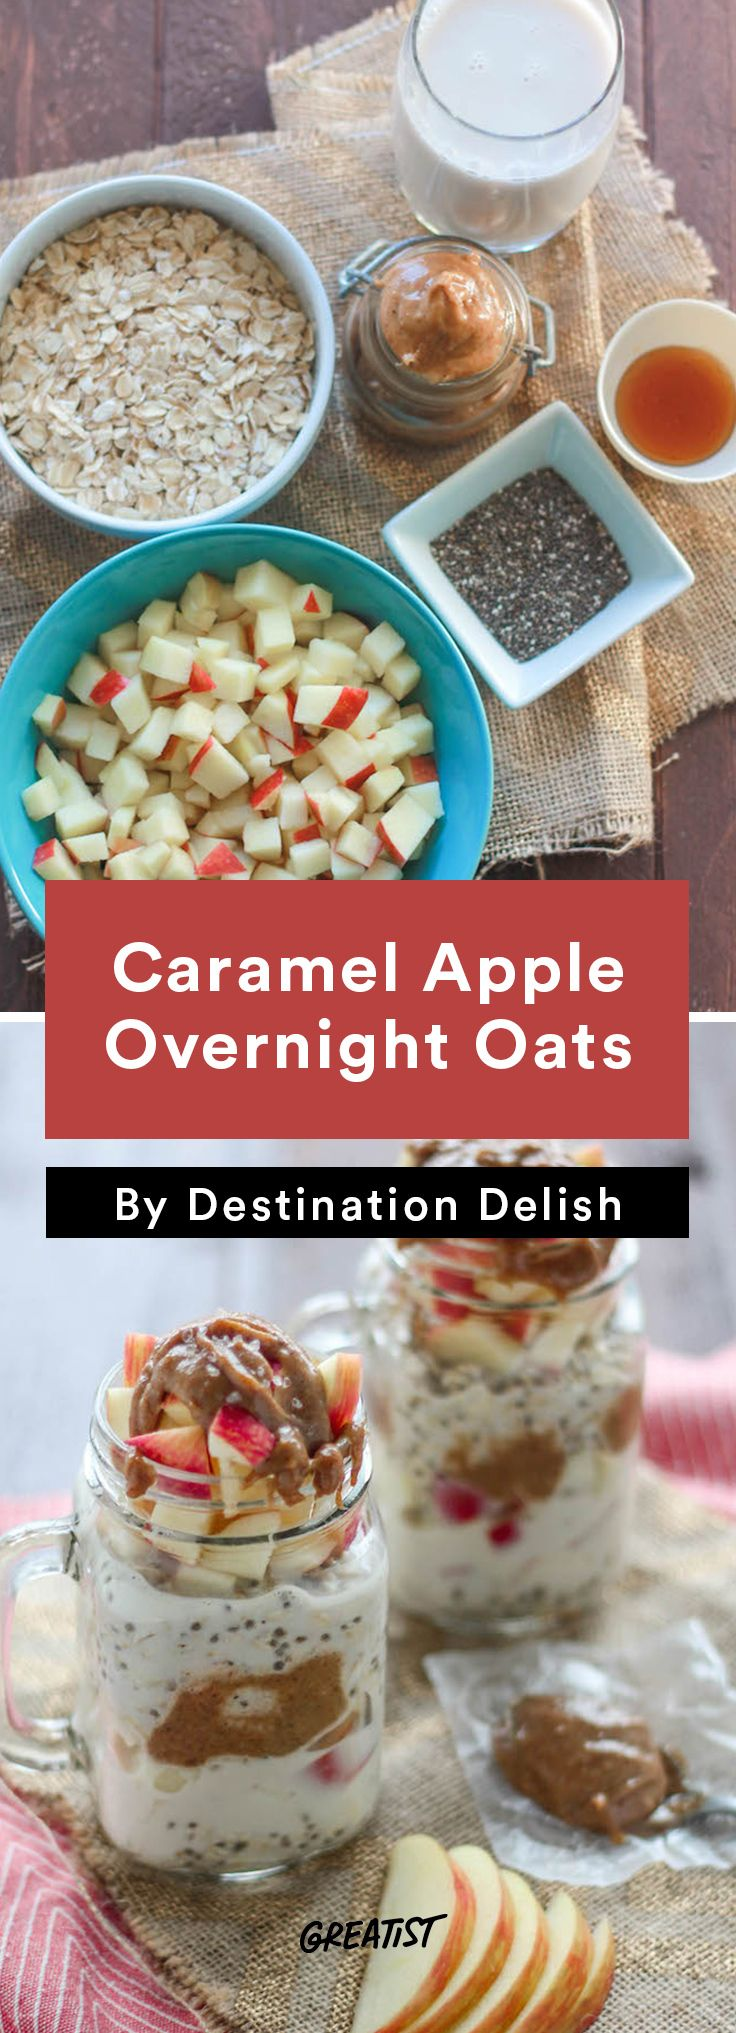 These caramel apple overnight oats from @greatist taste just like dessert!